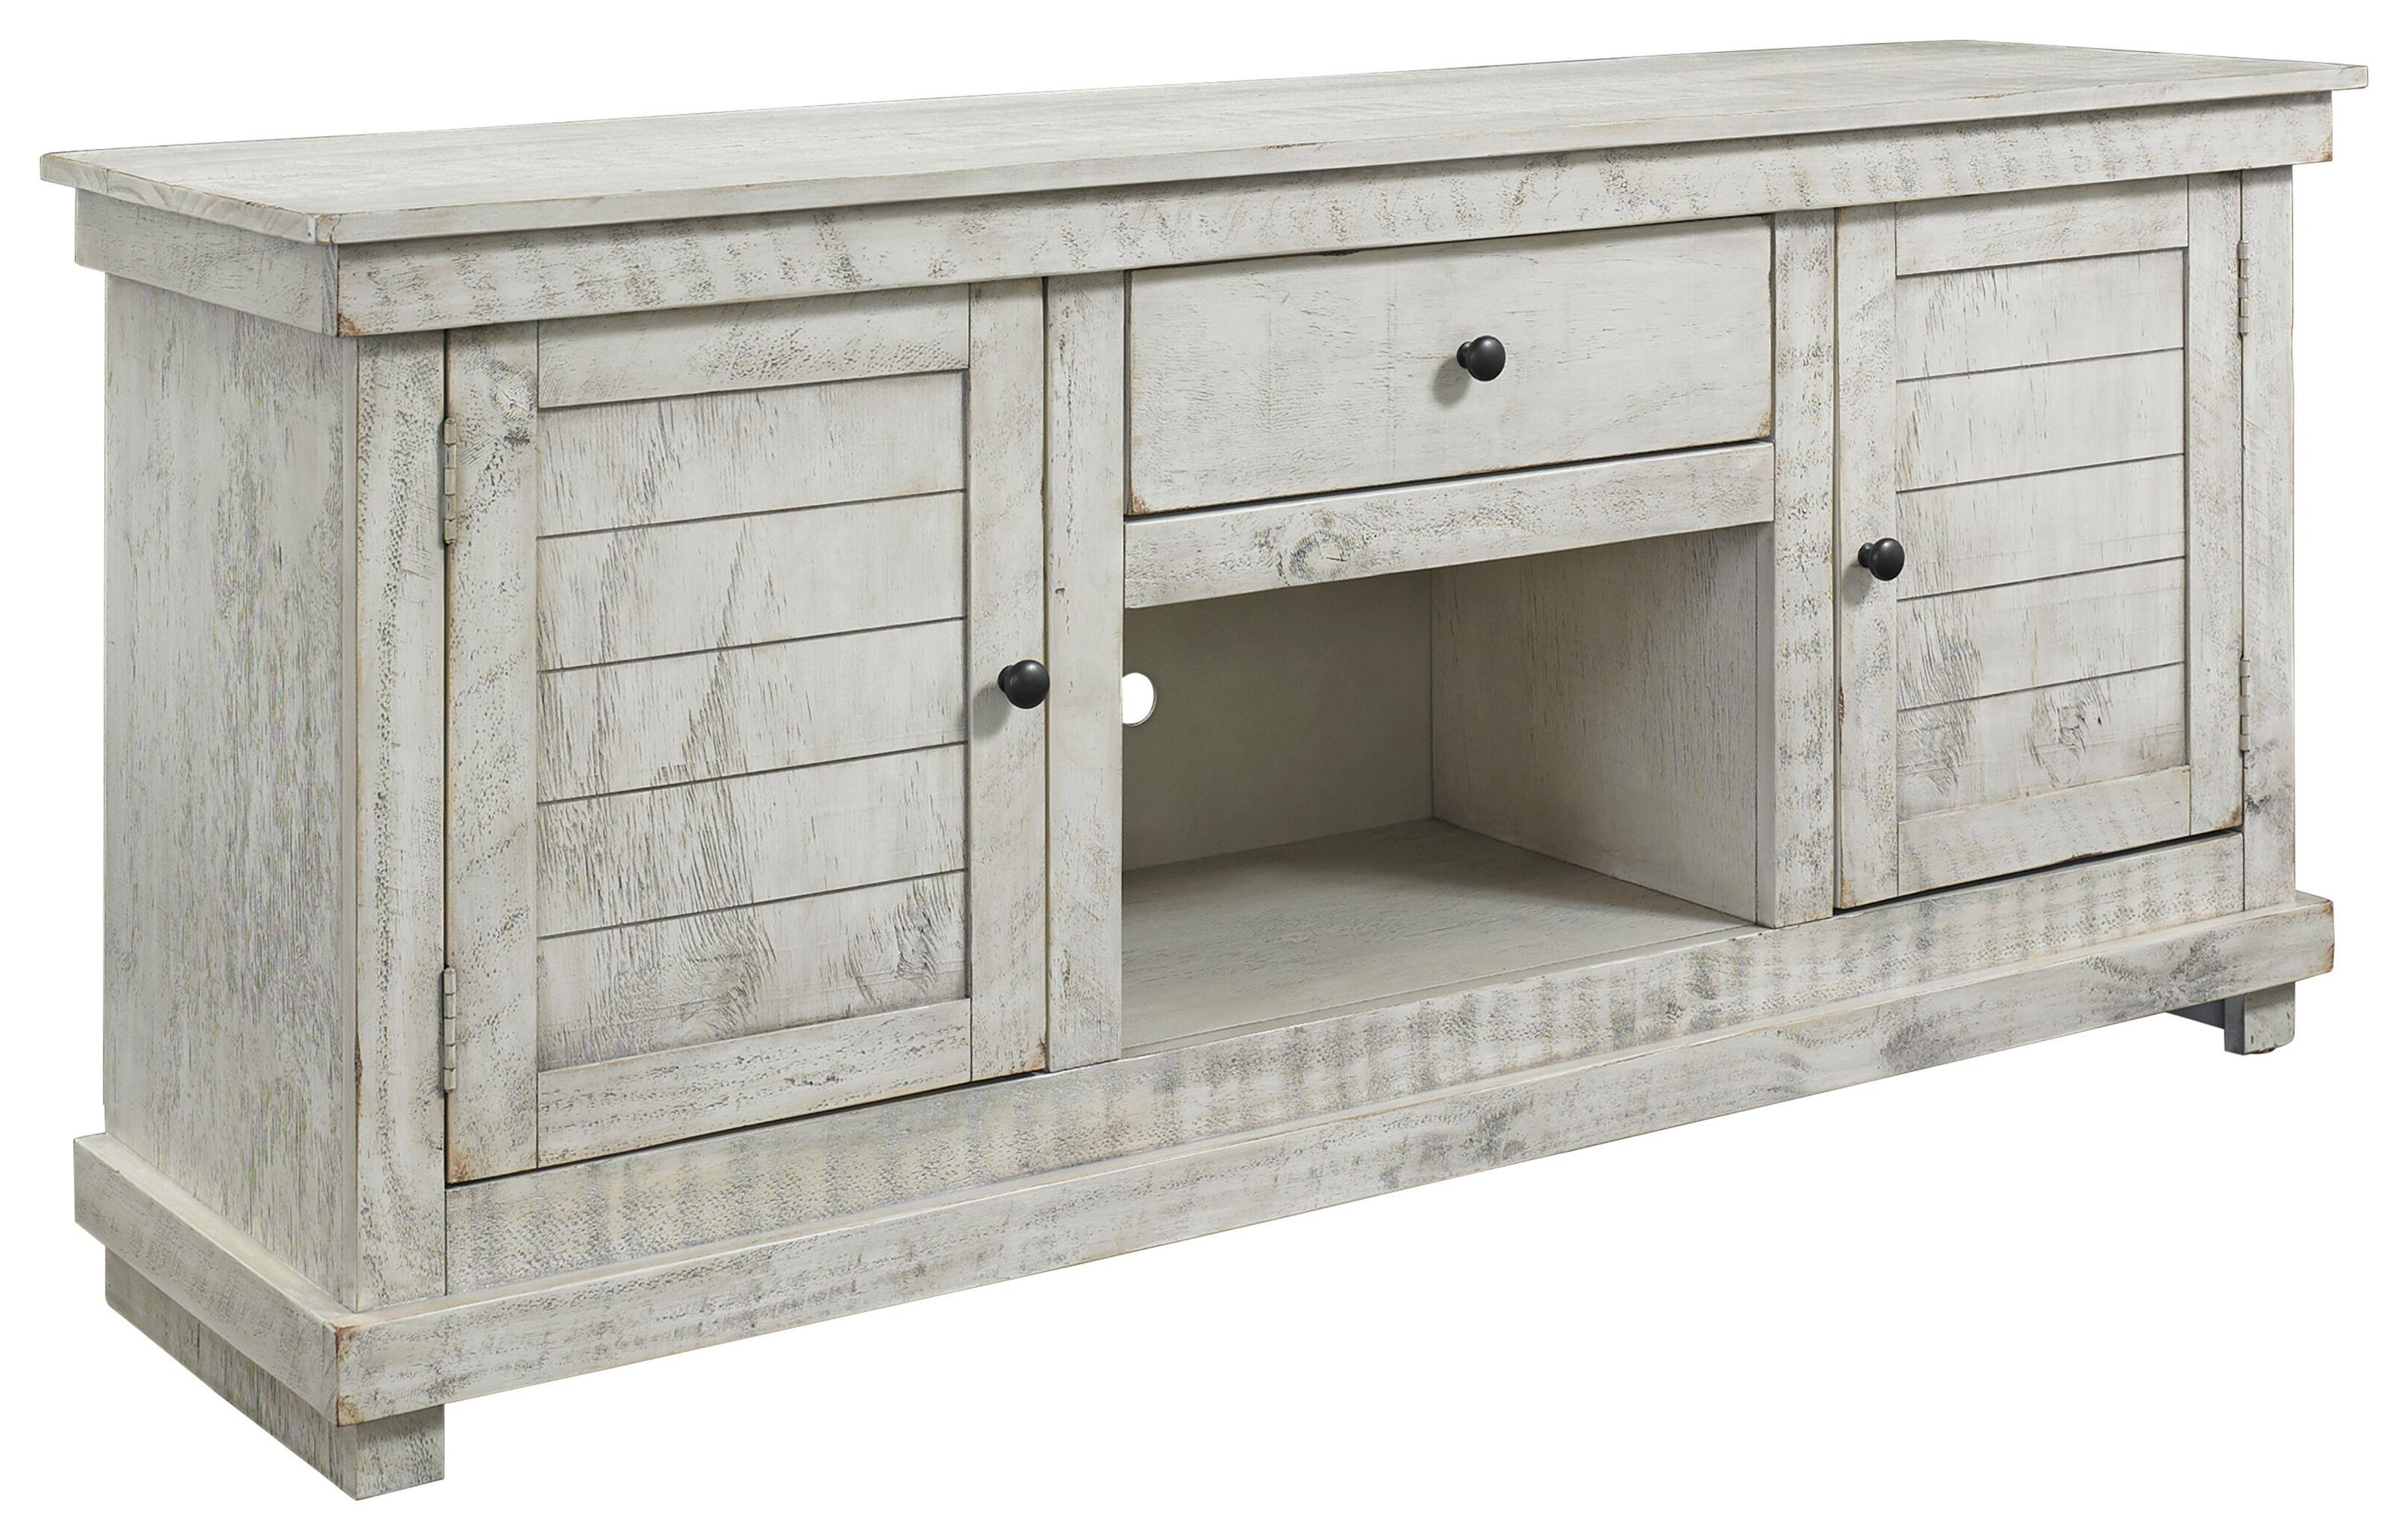 641 Villa Distressed Entertainment Console by Hillsdale at Furniture Fair - North Carolina